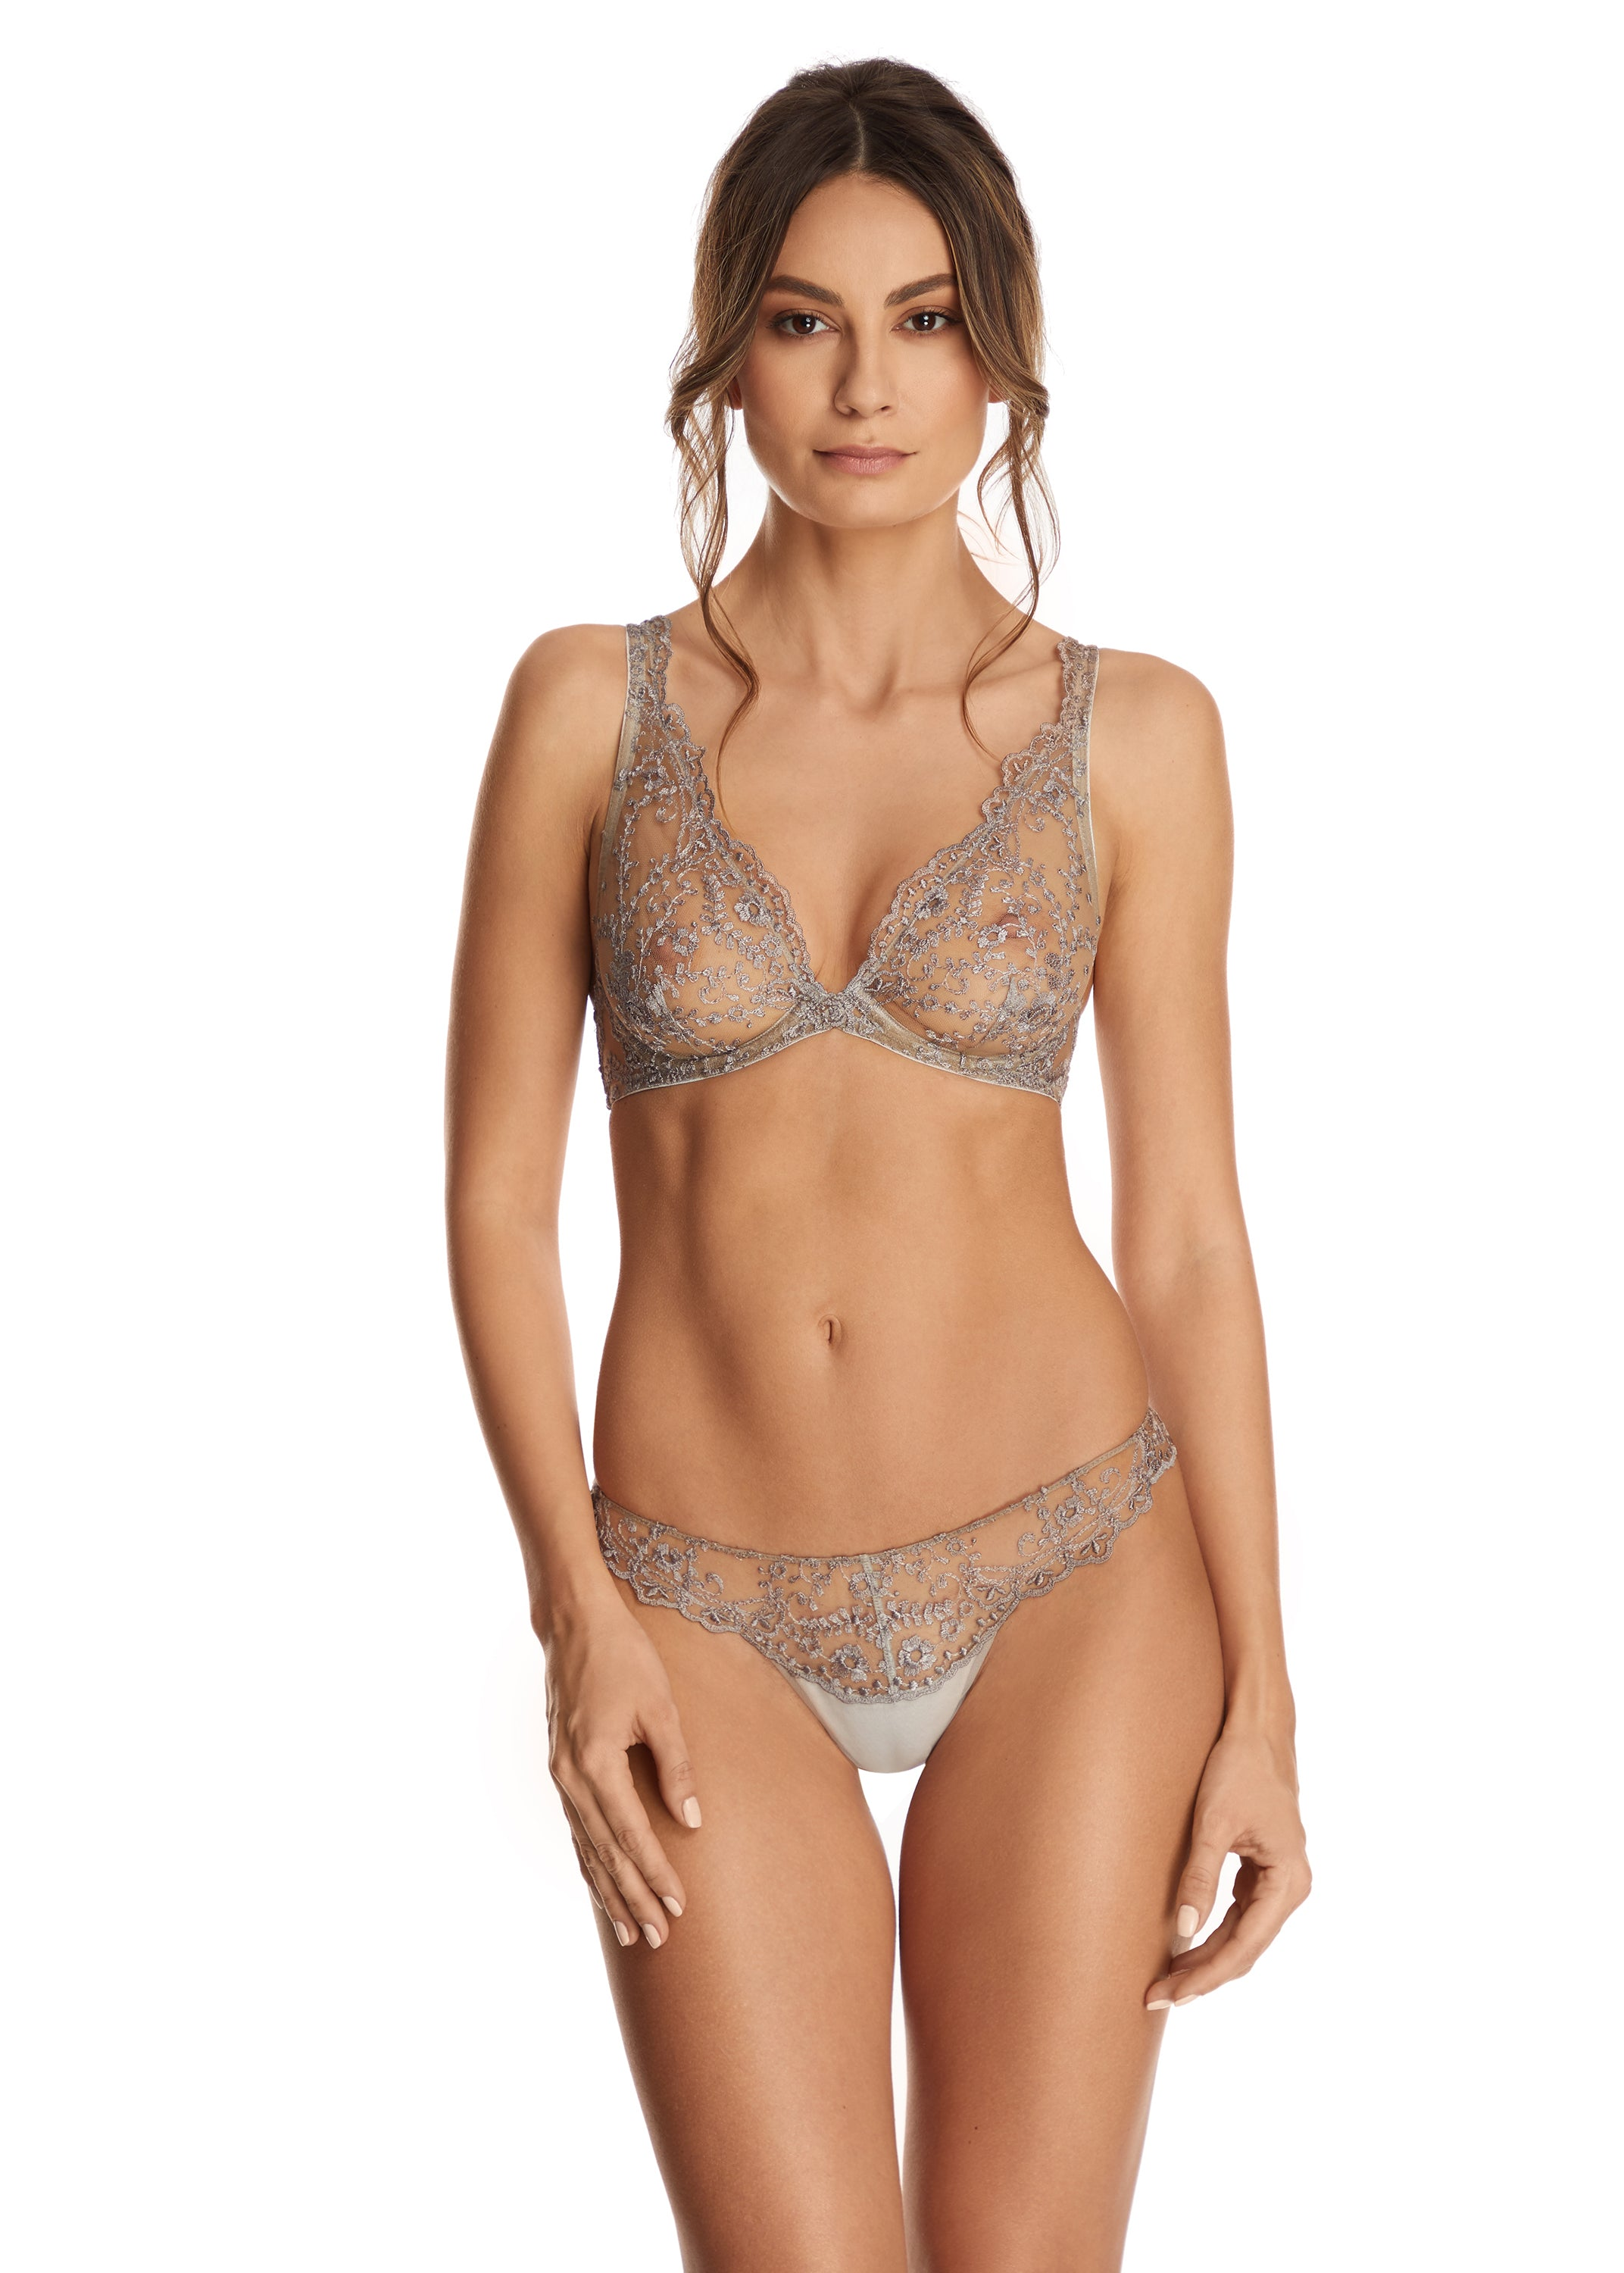 Hollywood Dream Underwired Triangle Bra in Silver